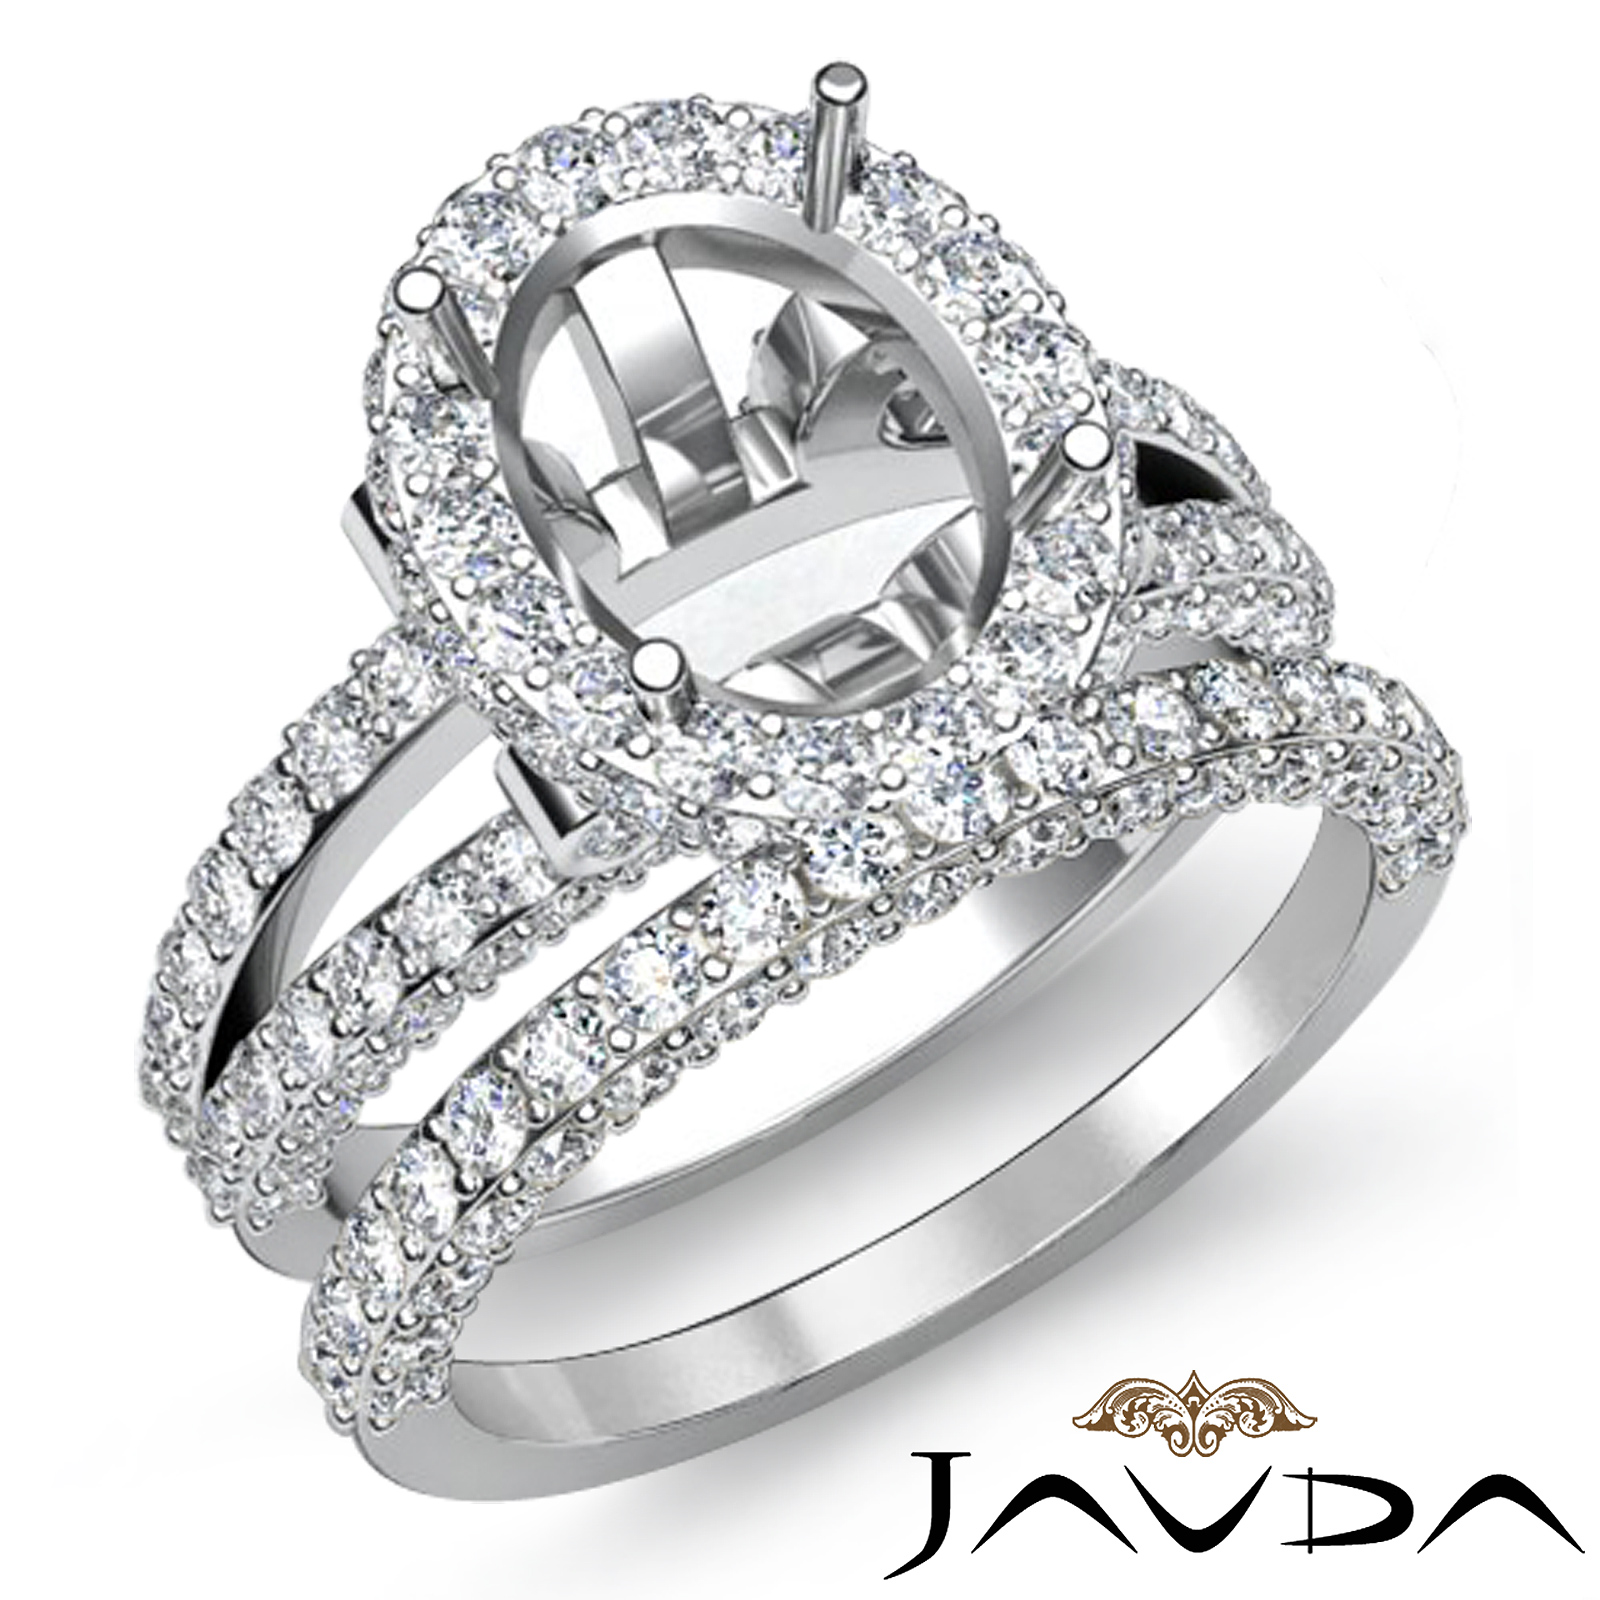 Halo Diamond Engagement Ring Oval Semi Mount Bridal Setting 14K Gold White 2